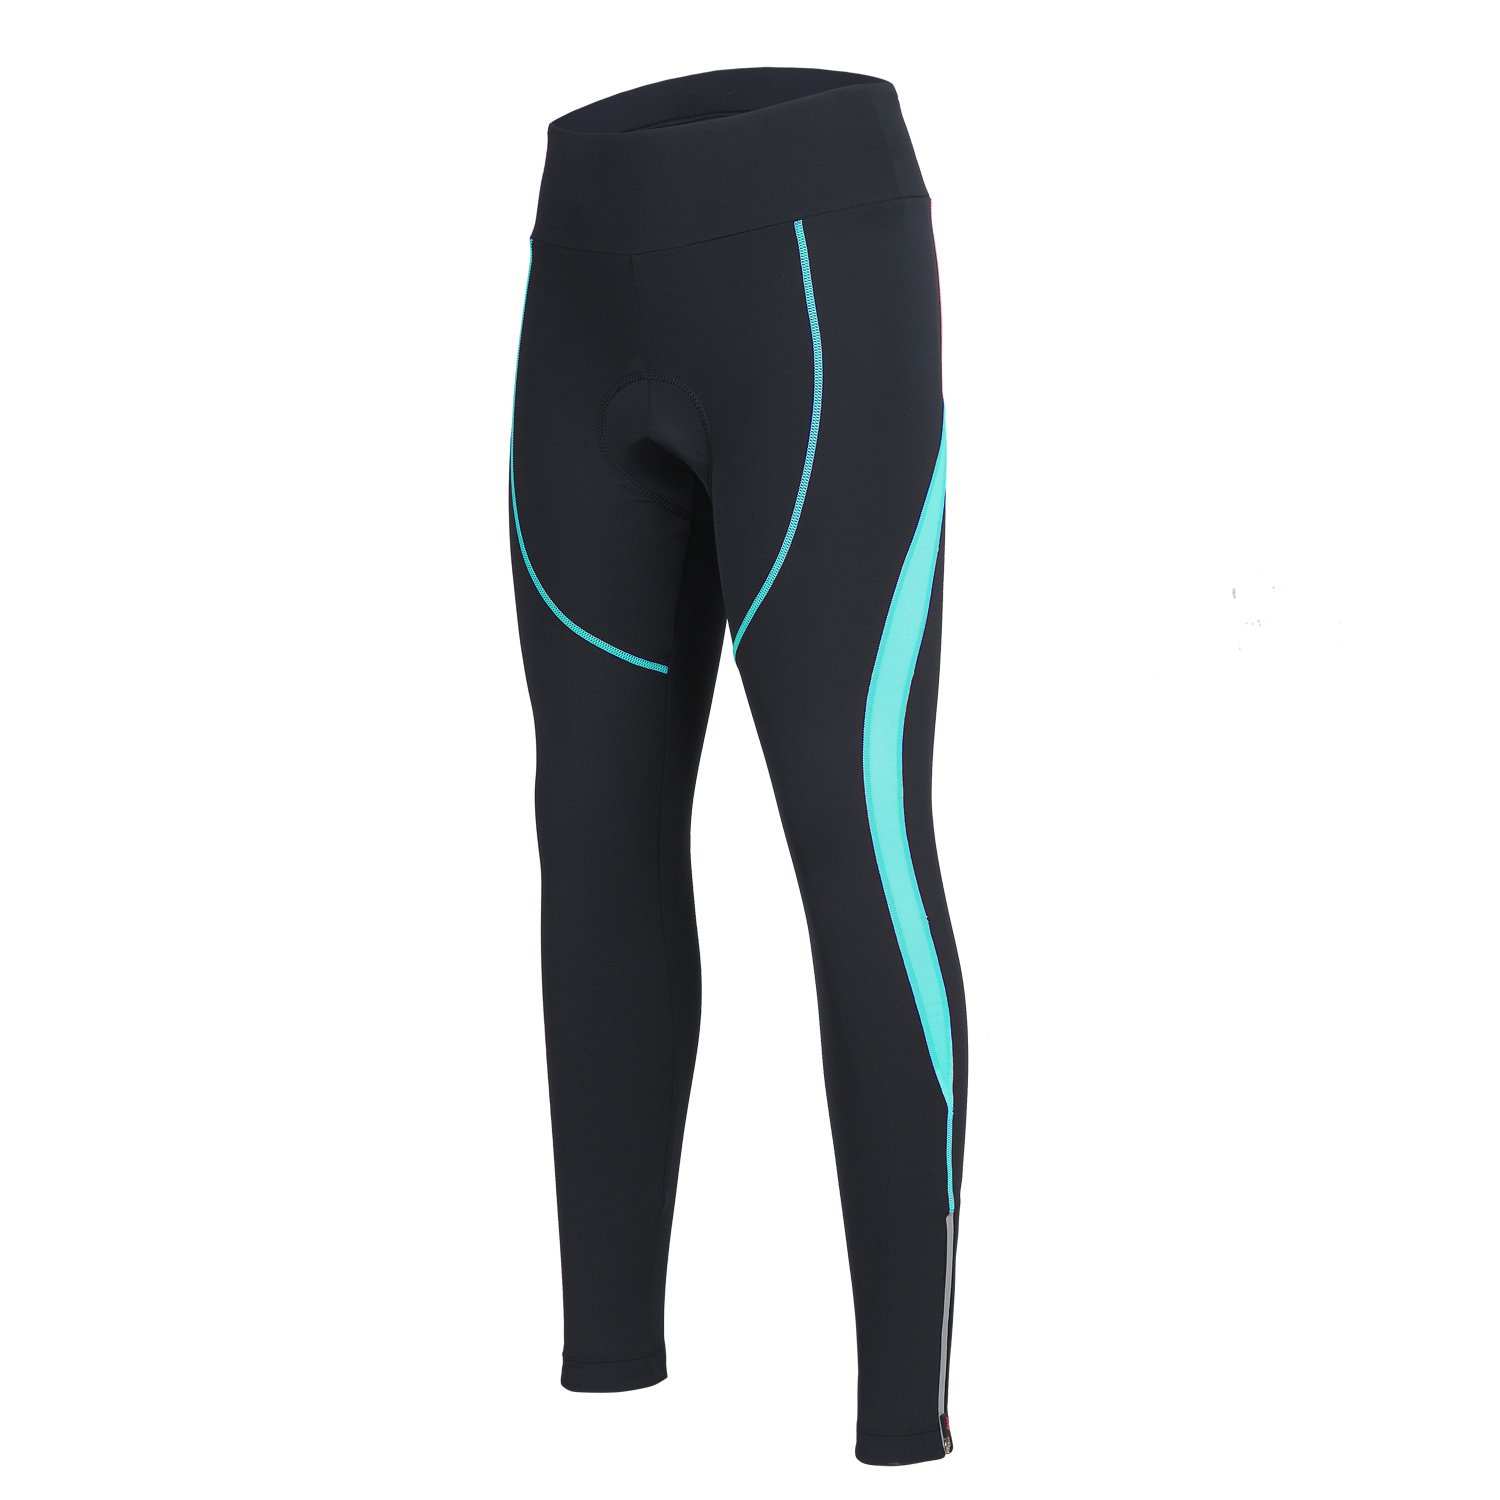 Women's Cycling Pants 3D Padded Compression Tight, Long Bike Bicycle Pants with Wide Waistband (Blue,M) by SPOEAR